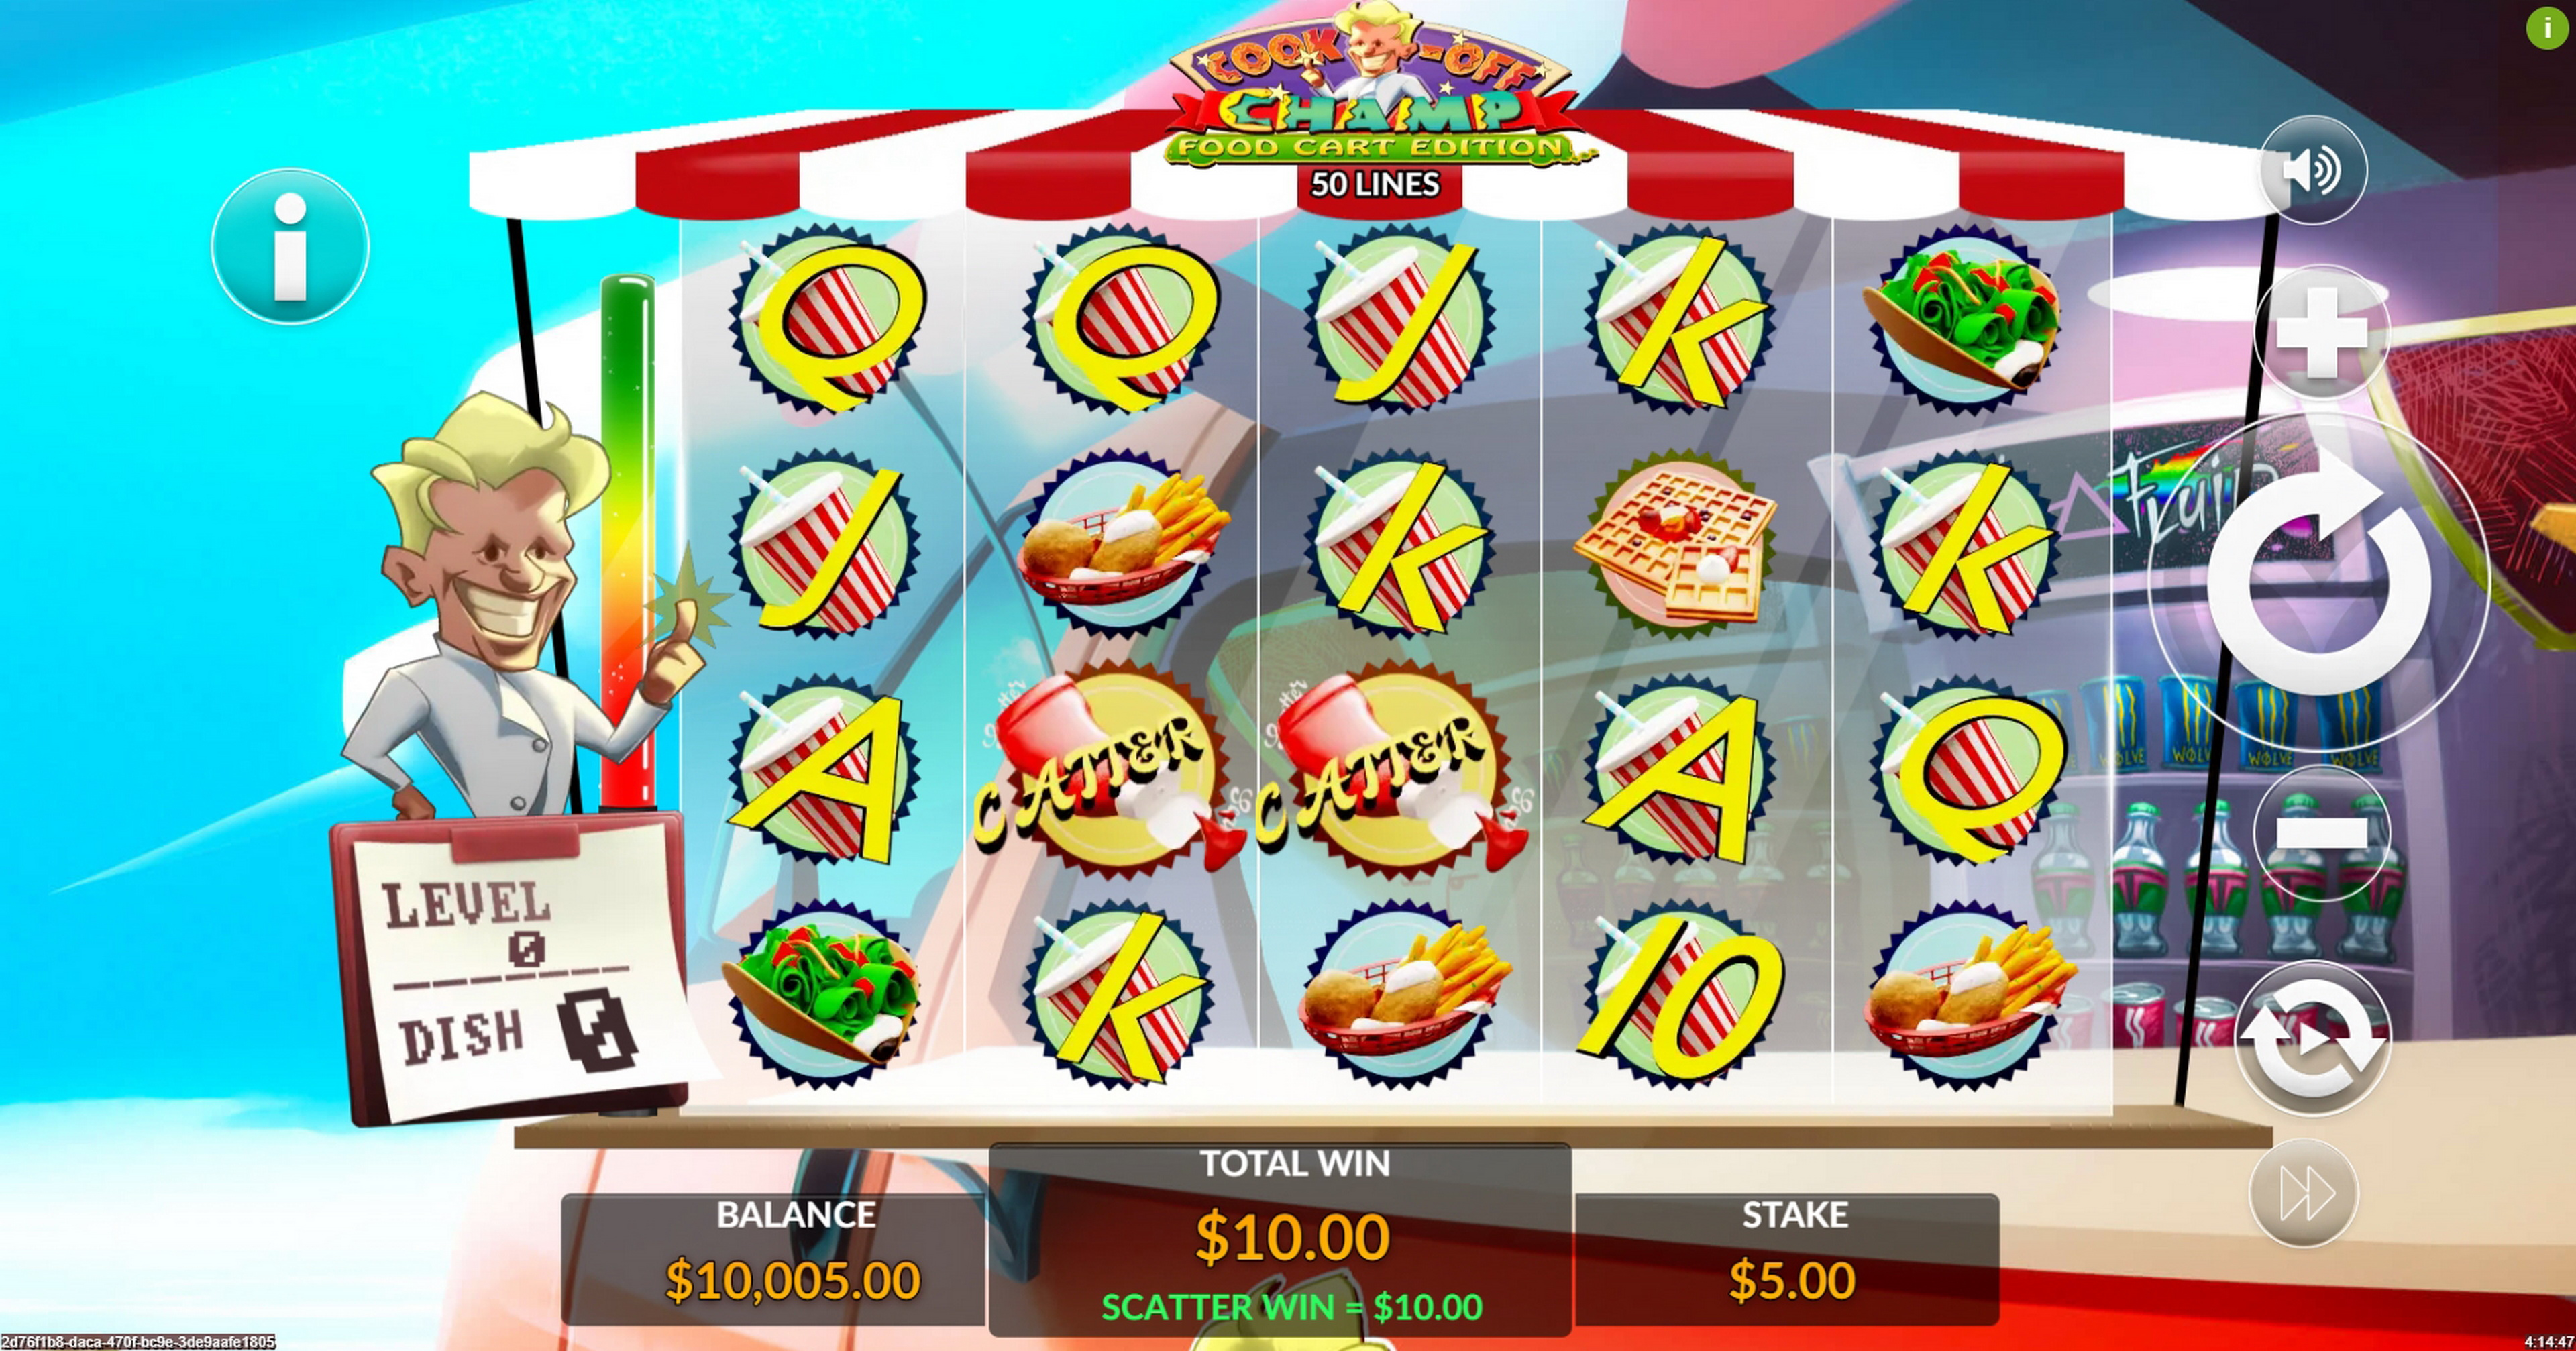 Win Money in Cook-Off Champ Free Slot Game by Maverick